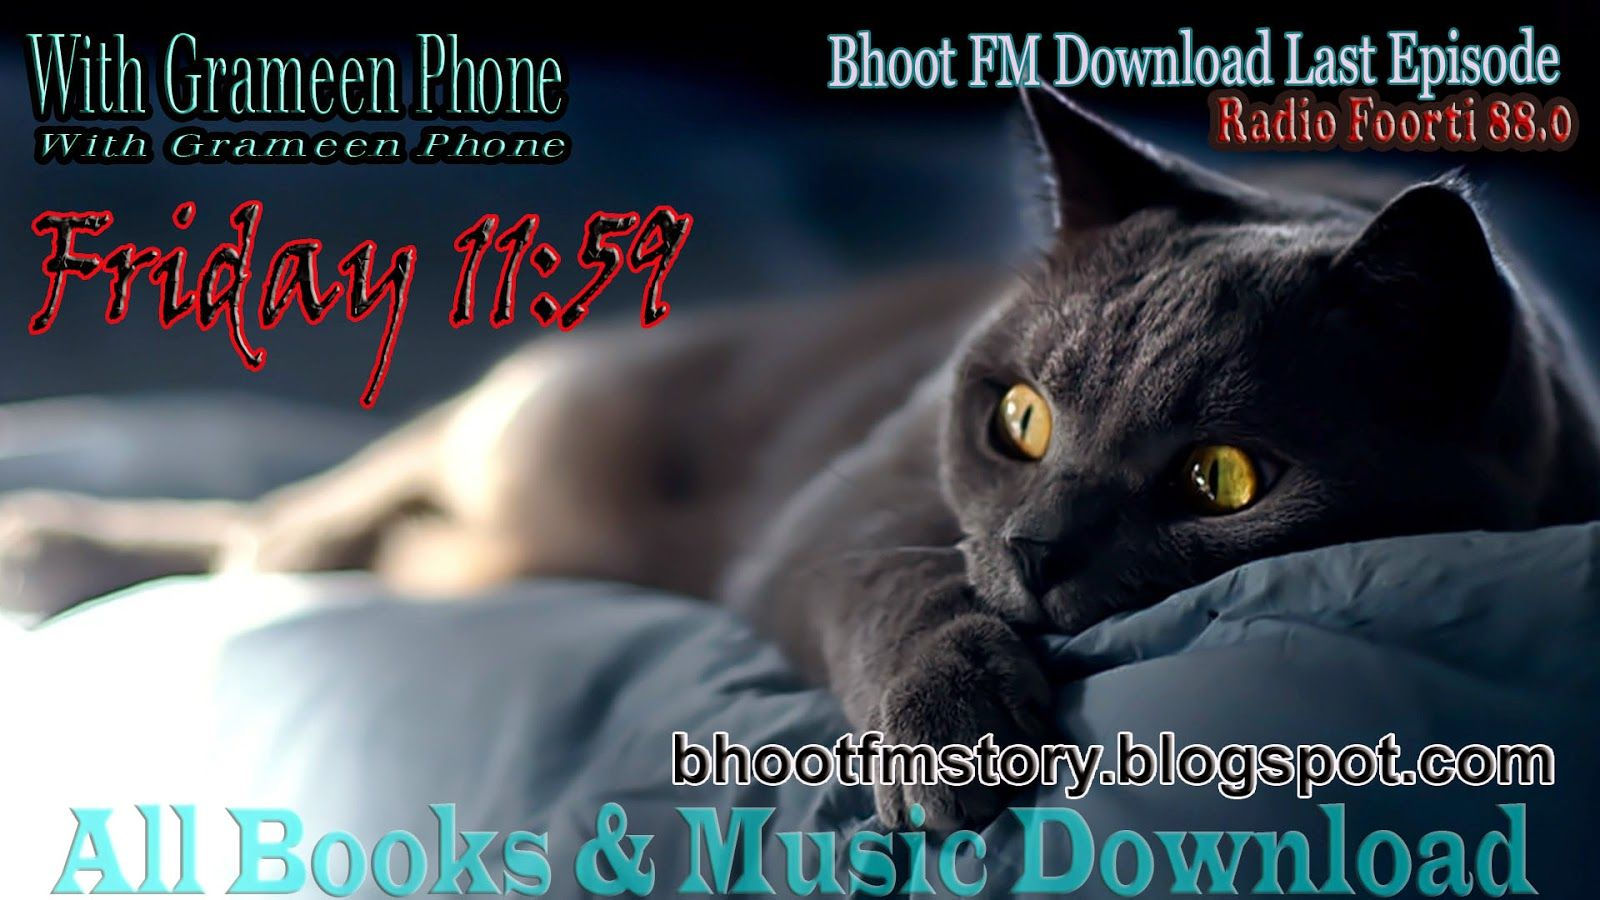 Bhoot FM, MP3 & Book Download: Friday Bhoot FM, 09 May 2014